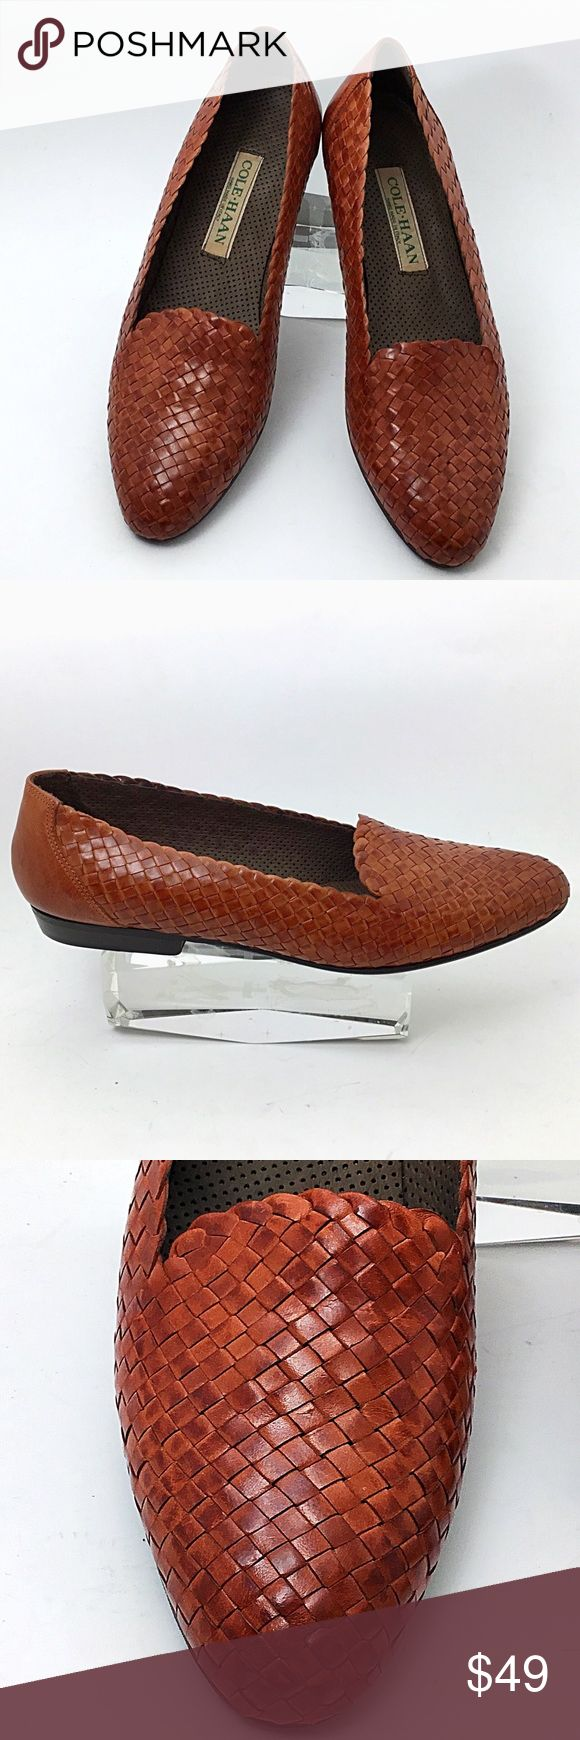 Cole Haan Leather Woven Flats (NWOT) For sale is a striking pair of leather flats by famed designer Cole Haan. Smart woven design gives it a great look for work or play. Condition: New without tags. Original box not included. If requested, I will provide a different box for storage. Cole Haan Shoes Flats & Loafers